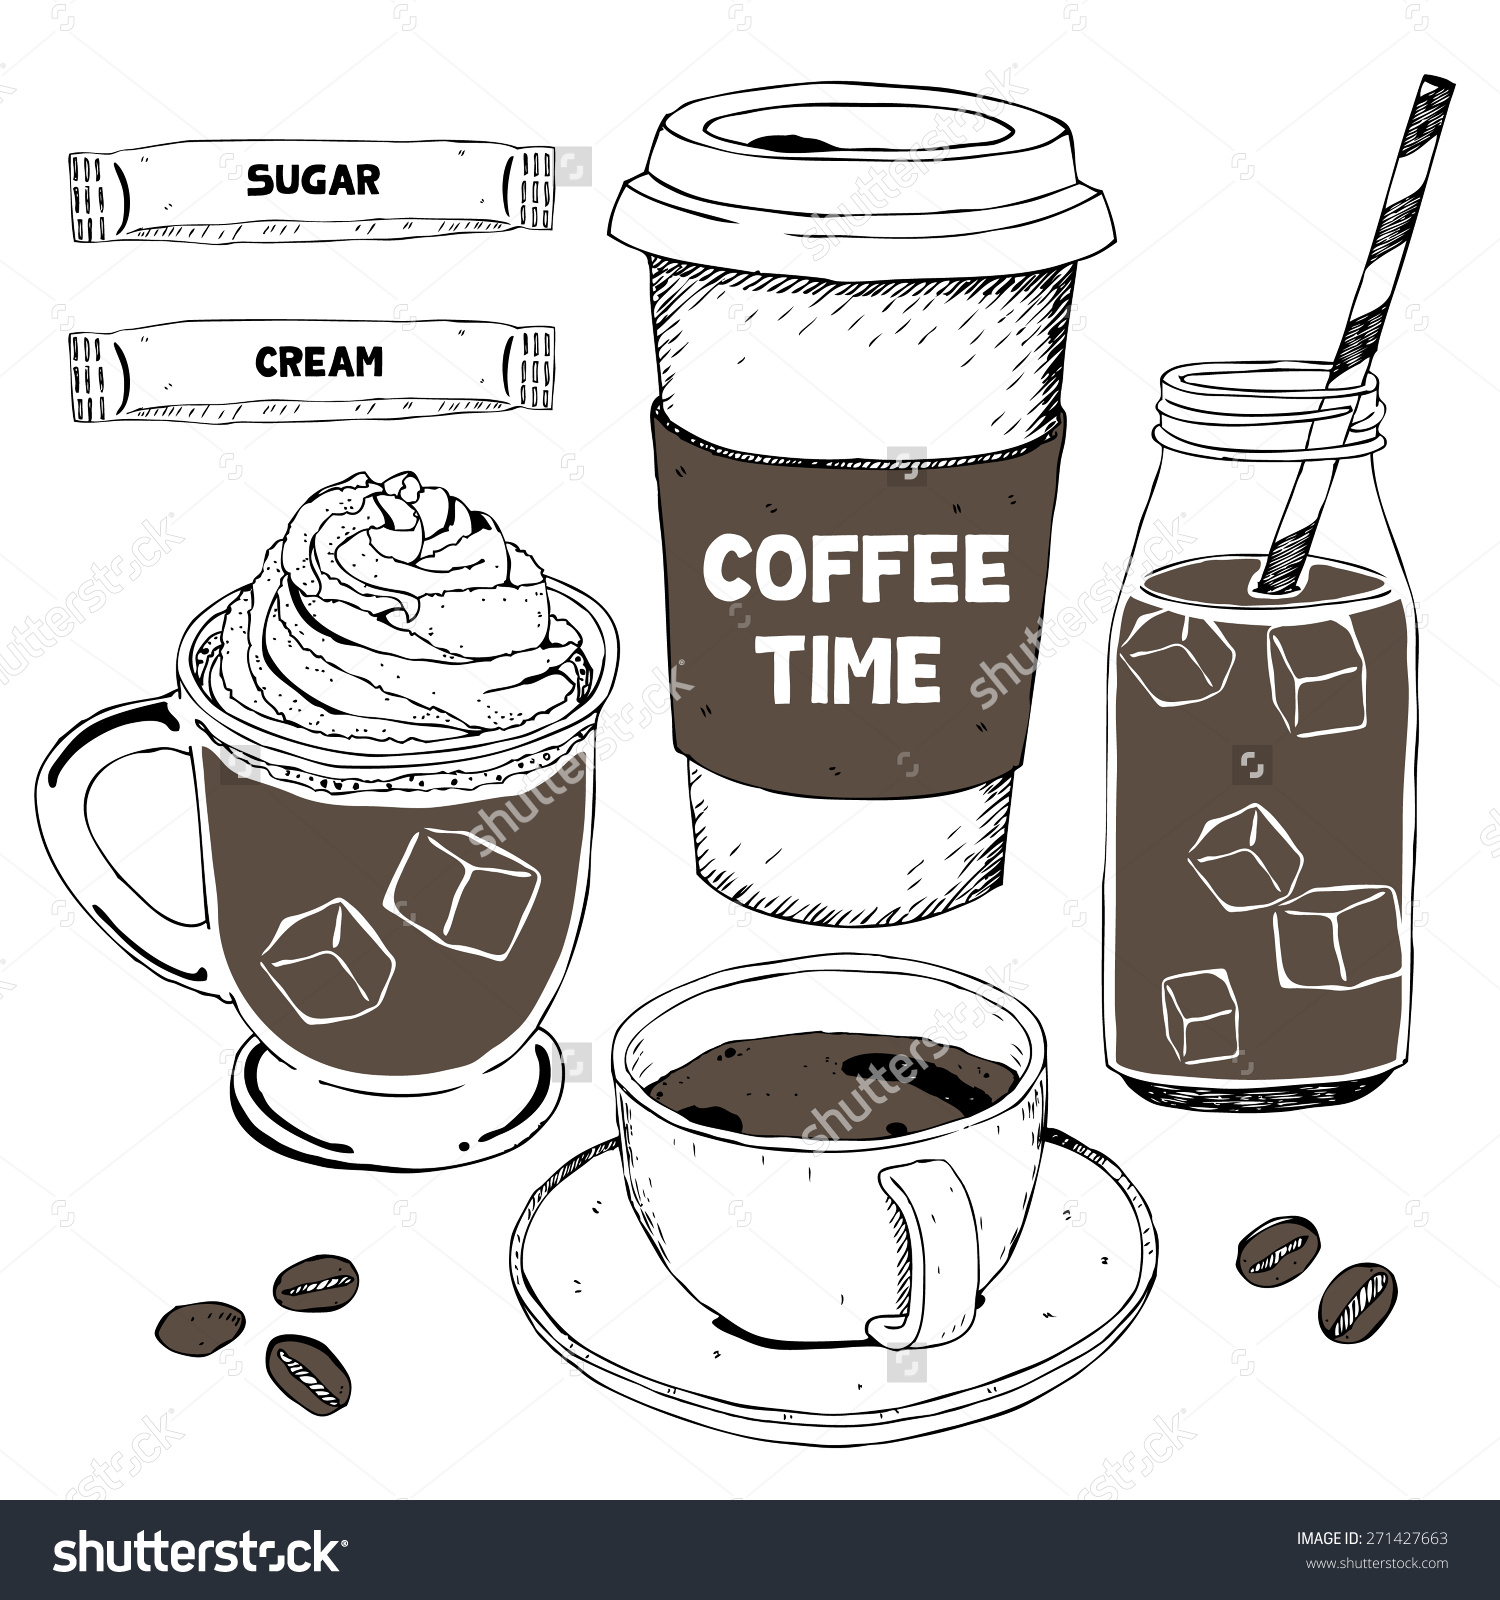 1500x1600 How To Draw A Coffee Cup